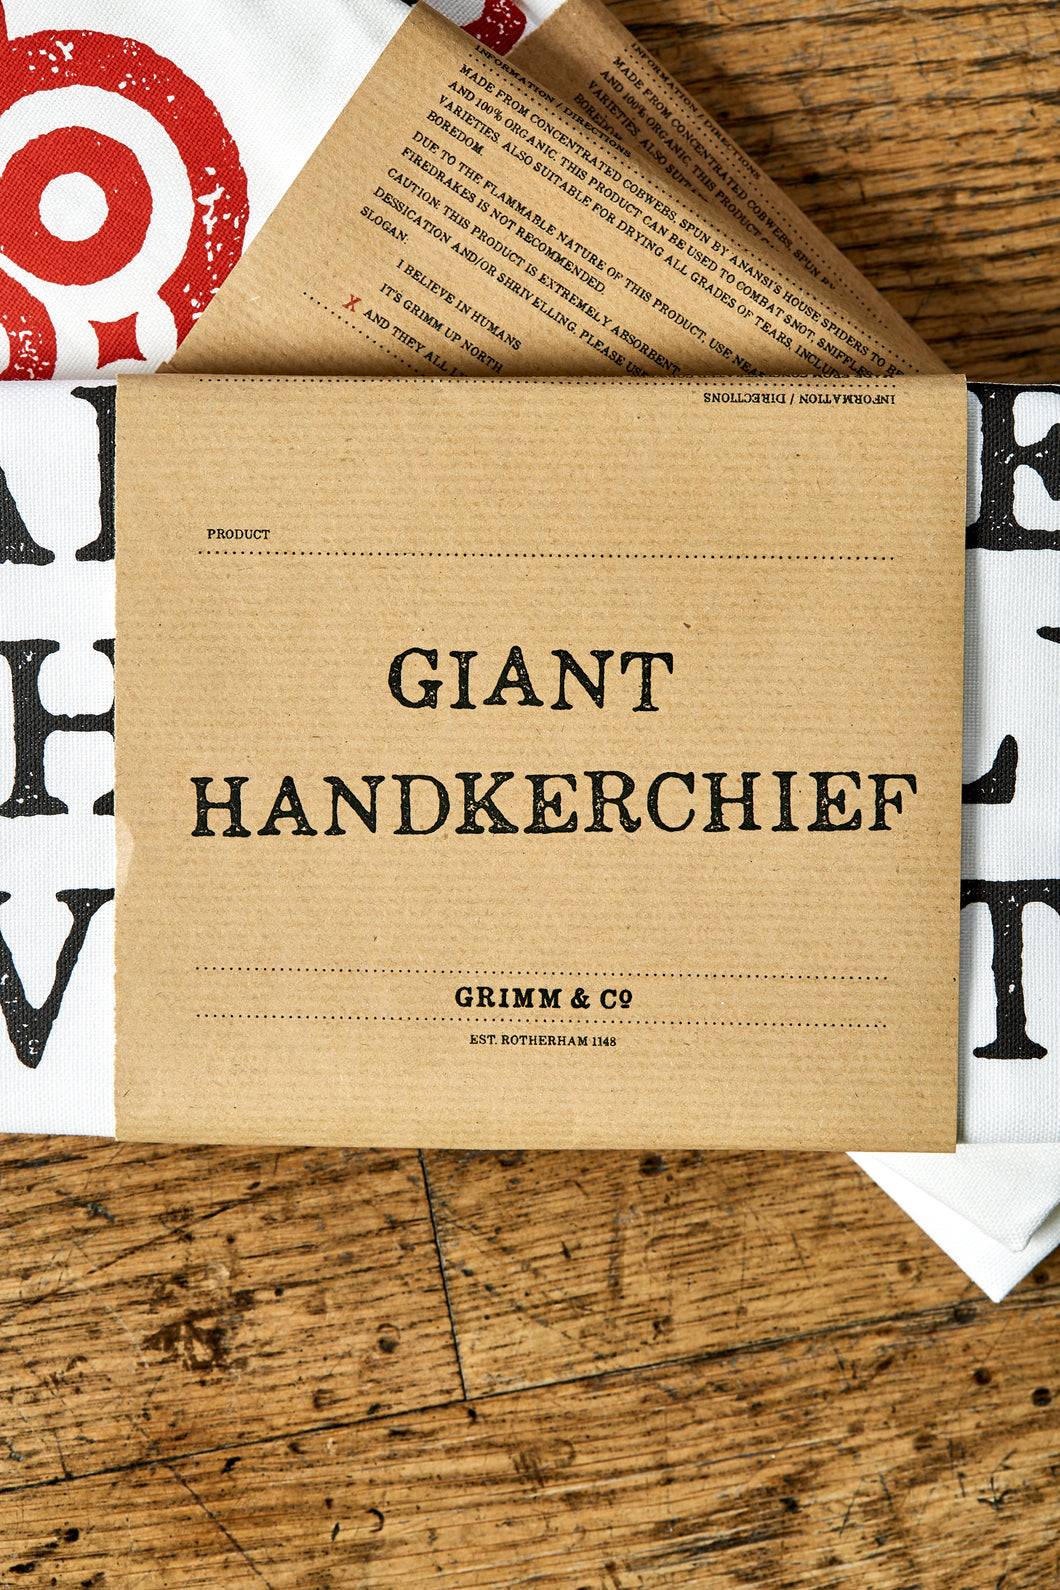 Giant Handkerchief - And They Lived Happily Ever After